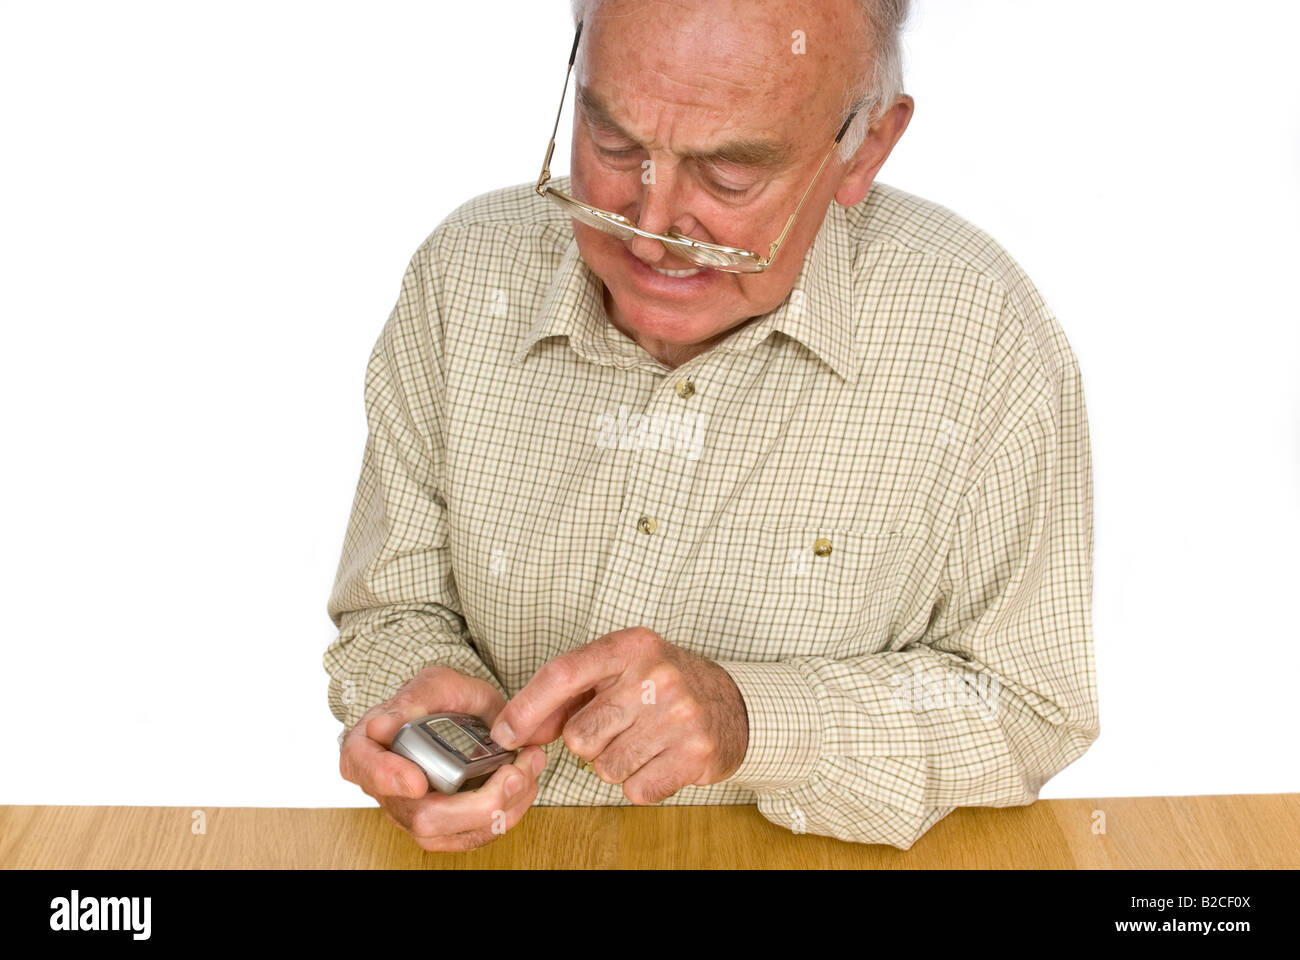 Horizontal portrait of an elderly gentleman getting frustrated using the small buttons on a mobile phone - Stock Image